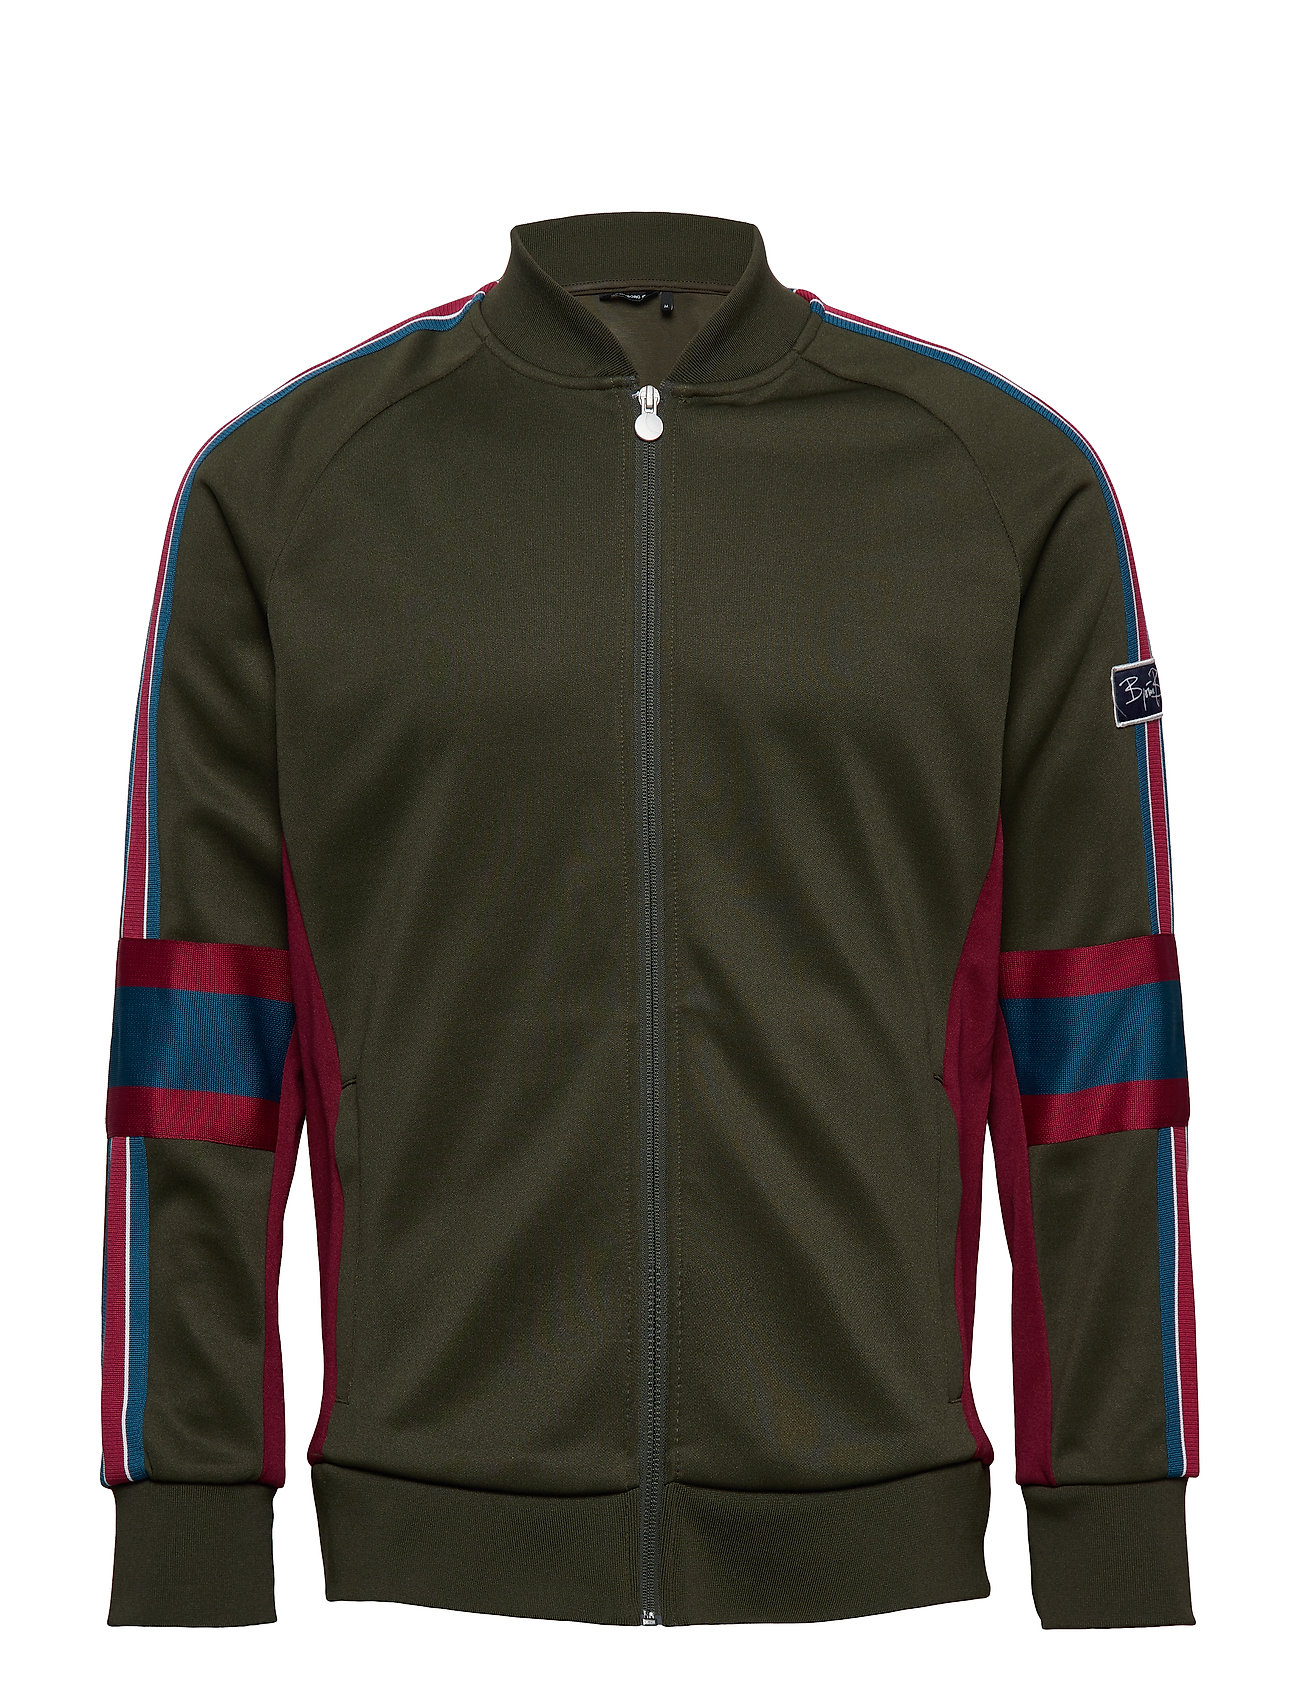 Björn Borg TRACK JACKET ARCHIVE - FOREST NIGHT